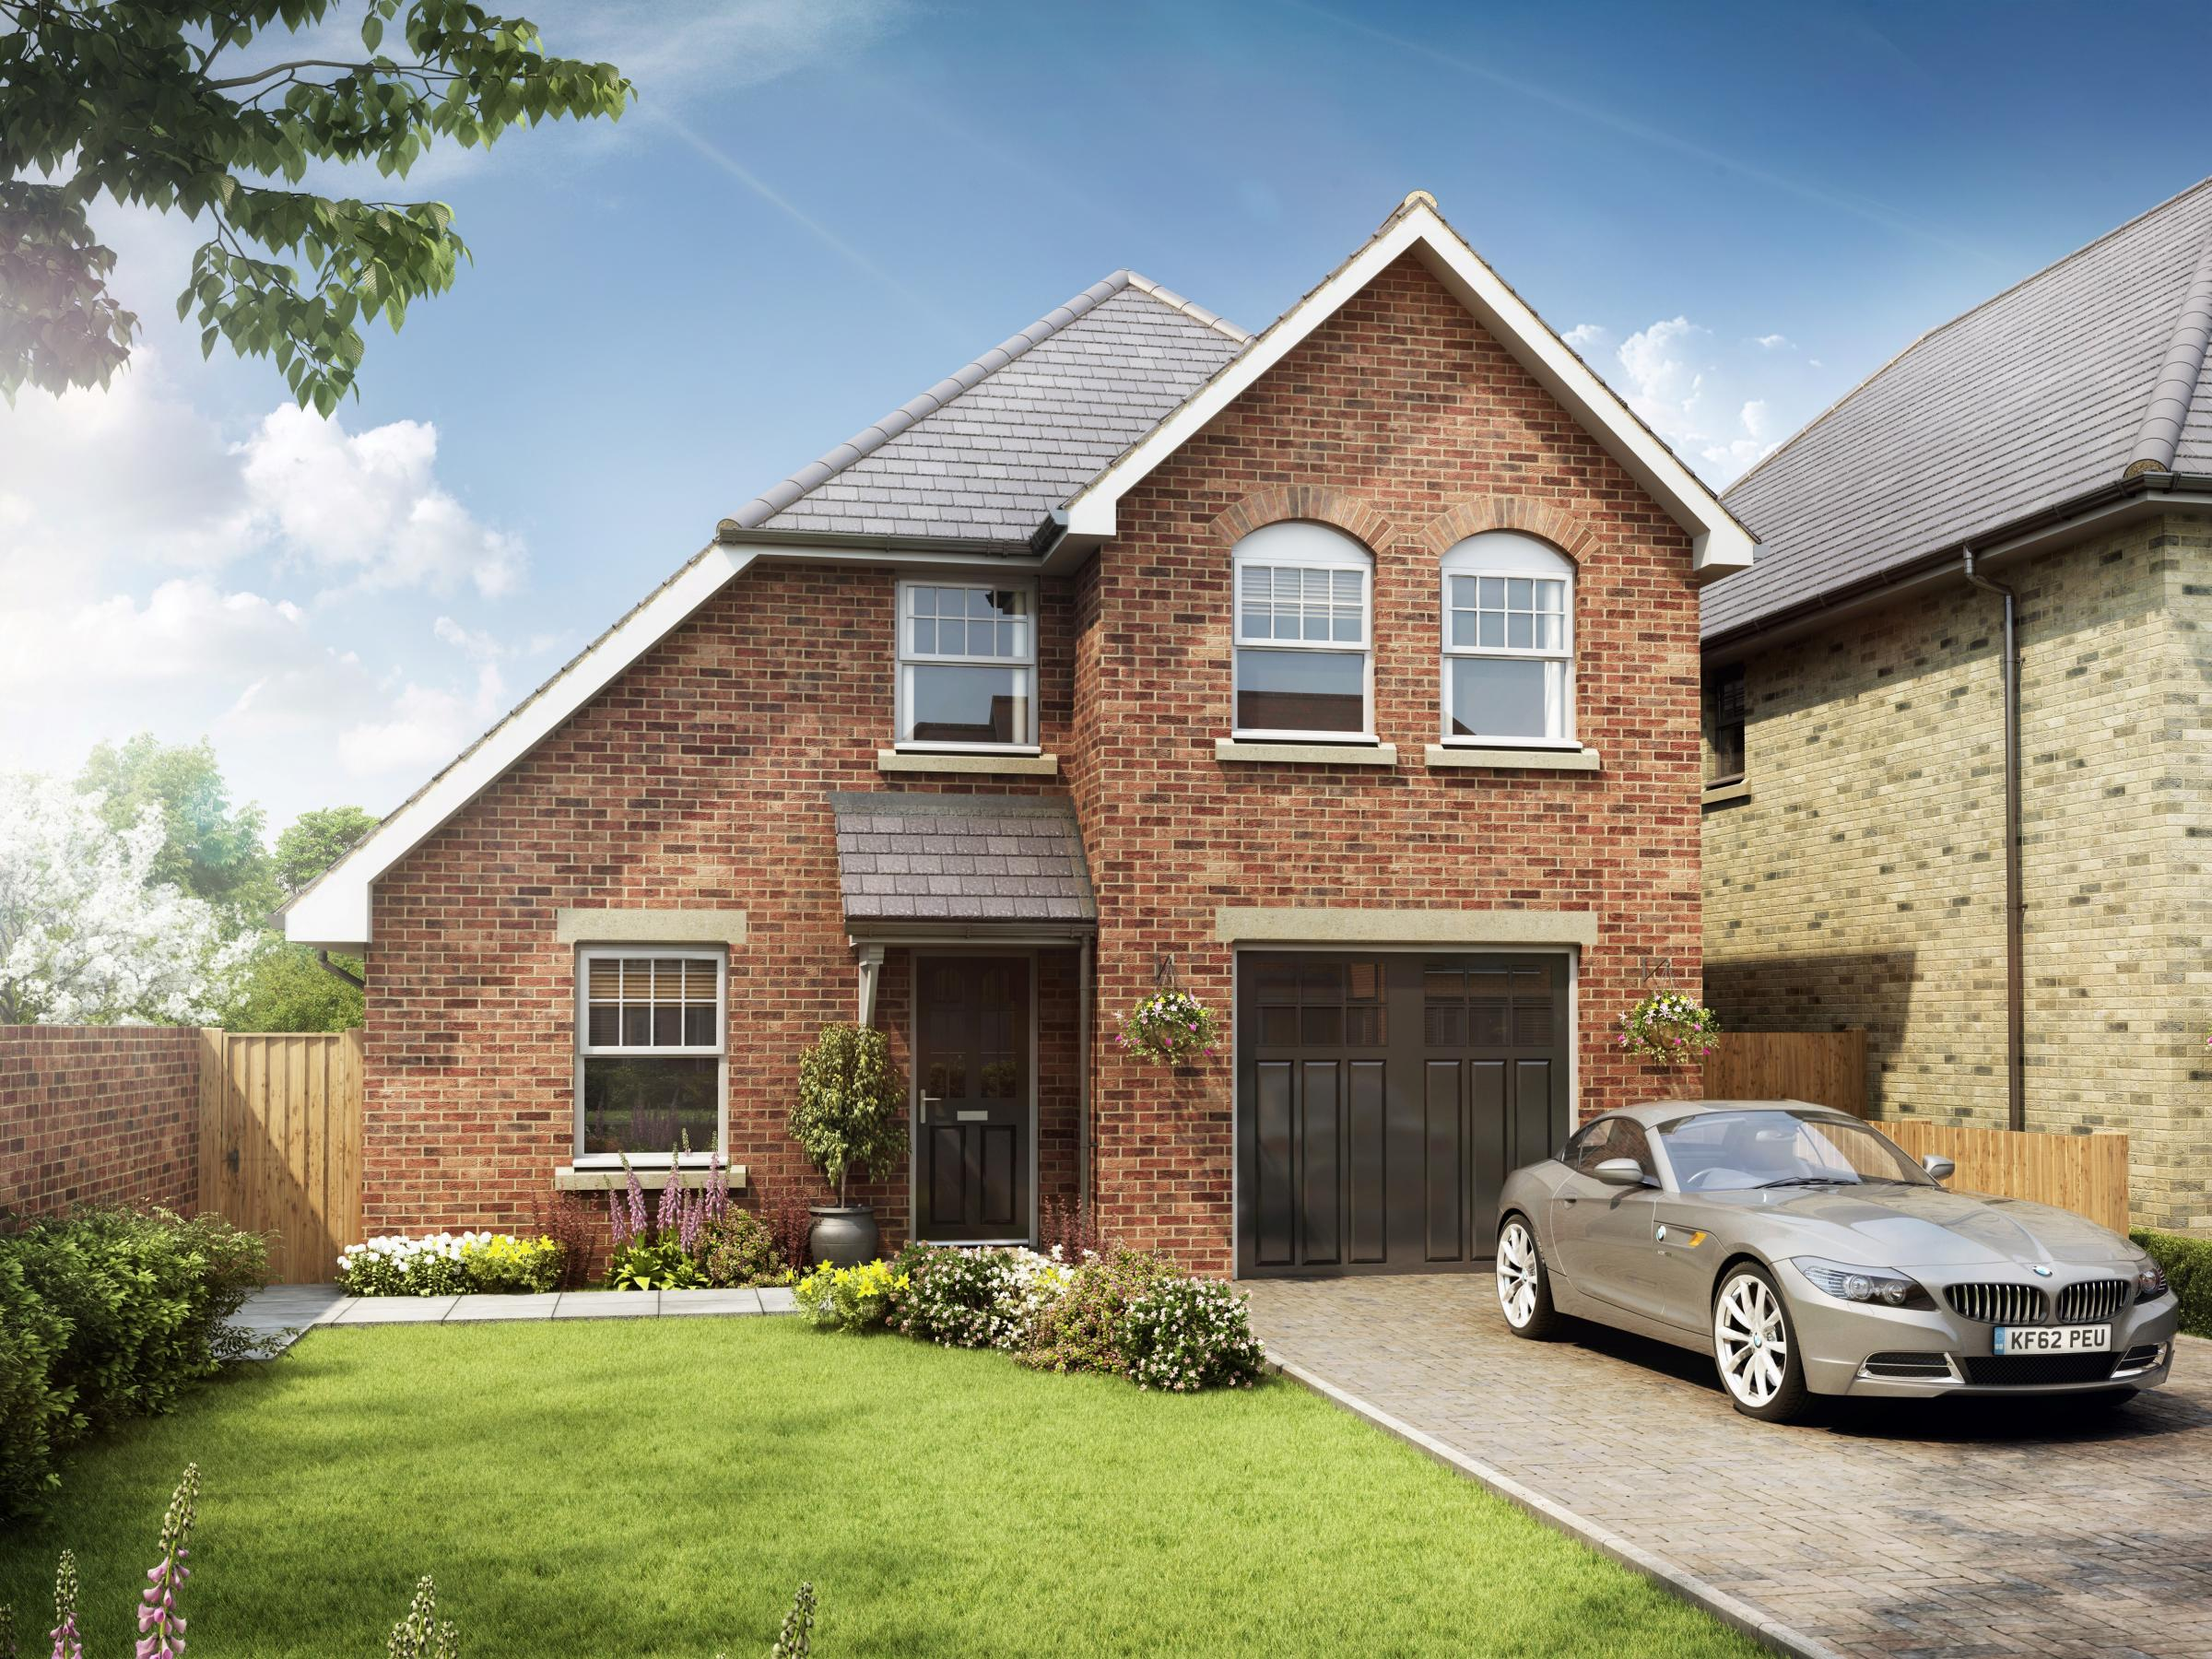 Four bedrooms, landscaped gardens, and it could be yours...for £895k